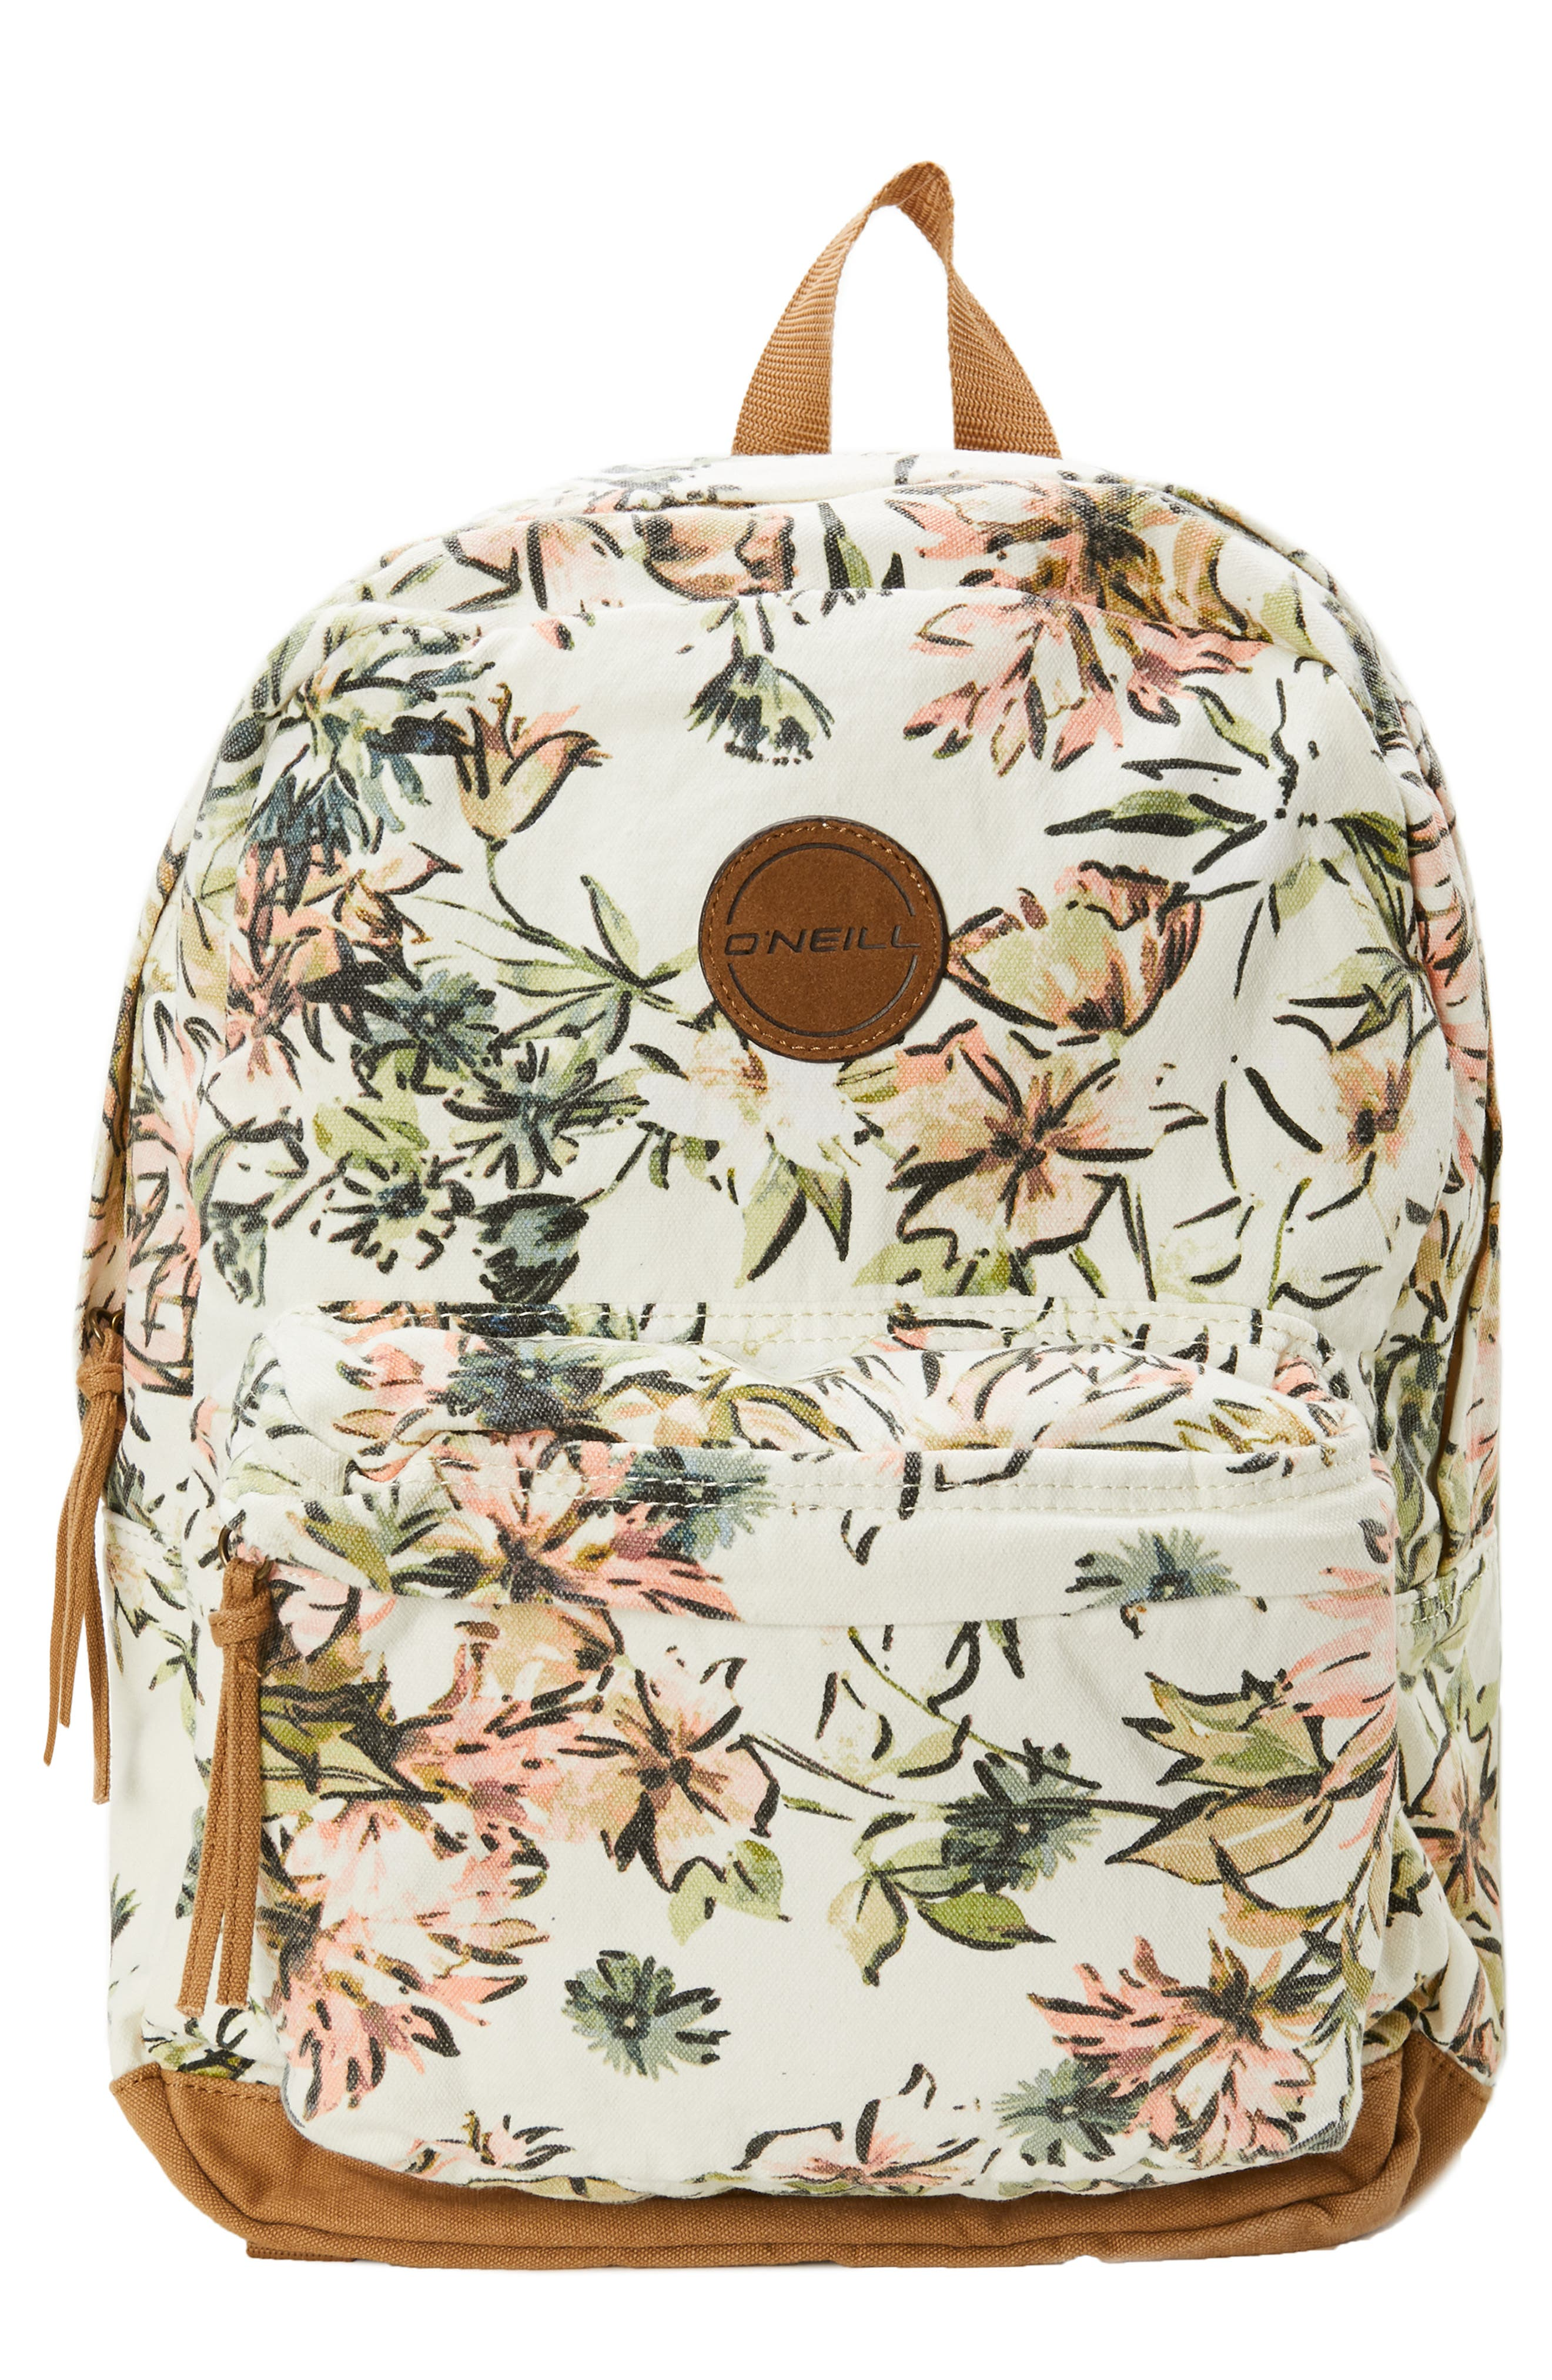 O'NEILL Shoreline Floral Print Canvas Backpack, Main, color, NAKED